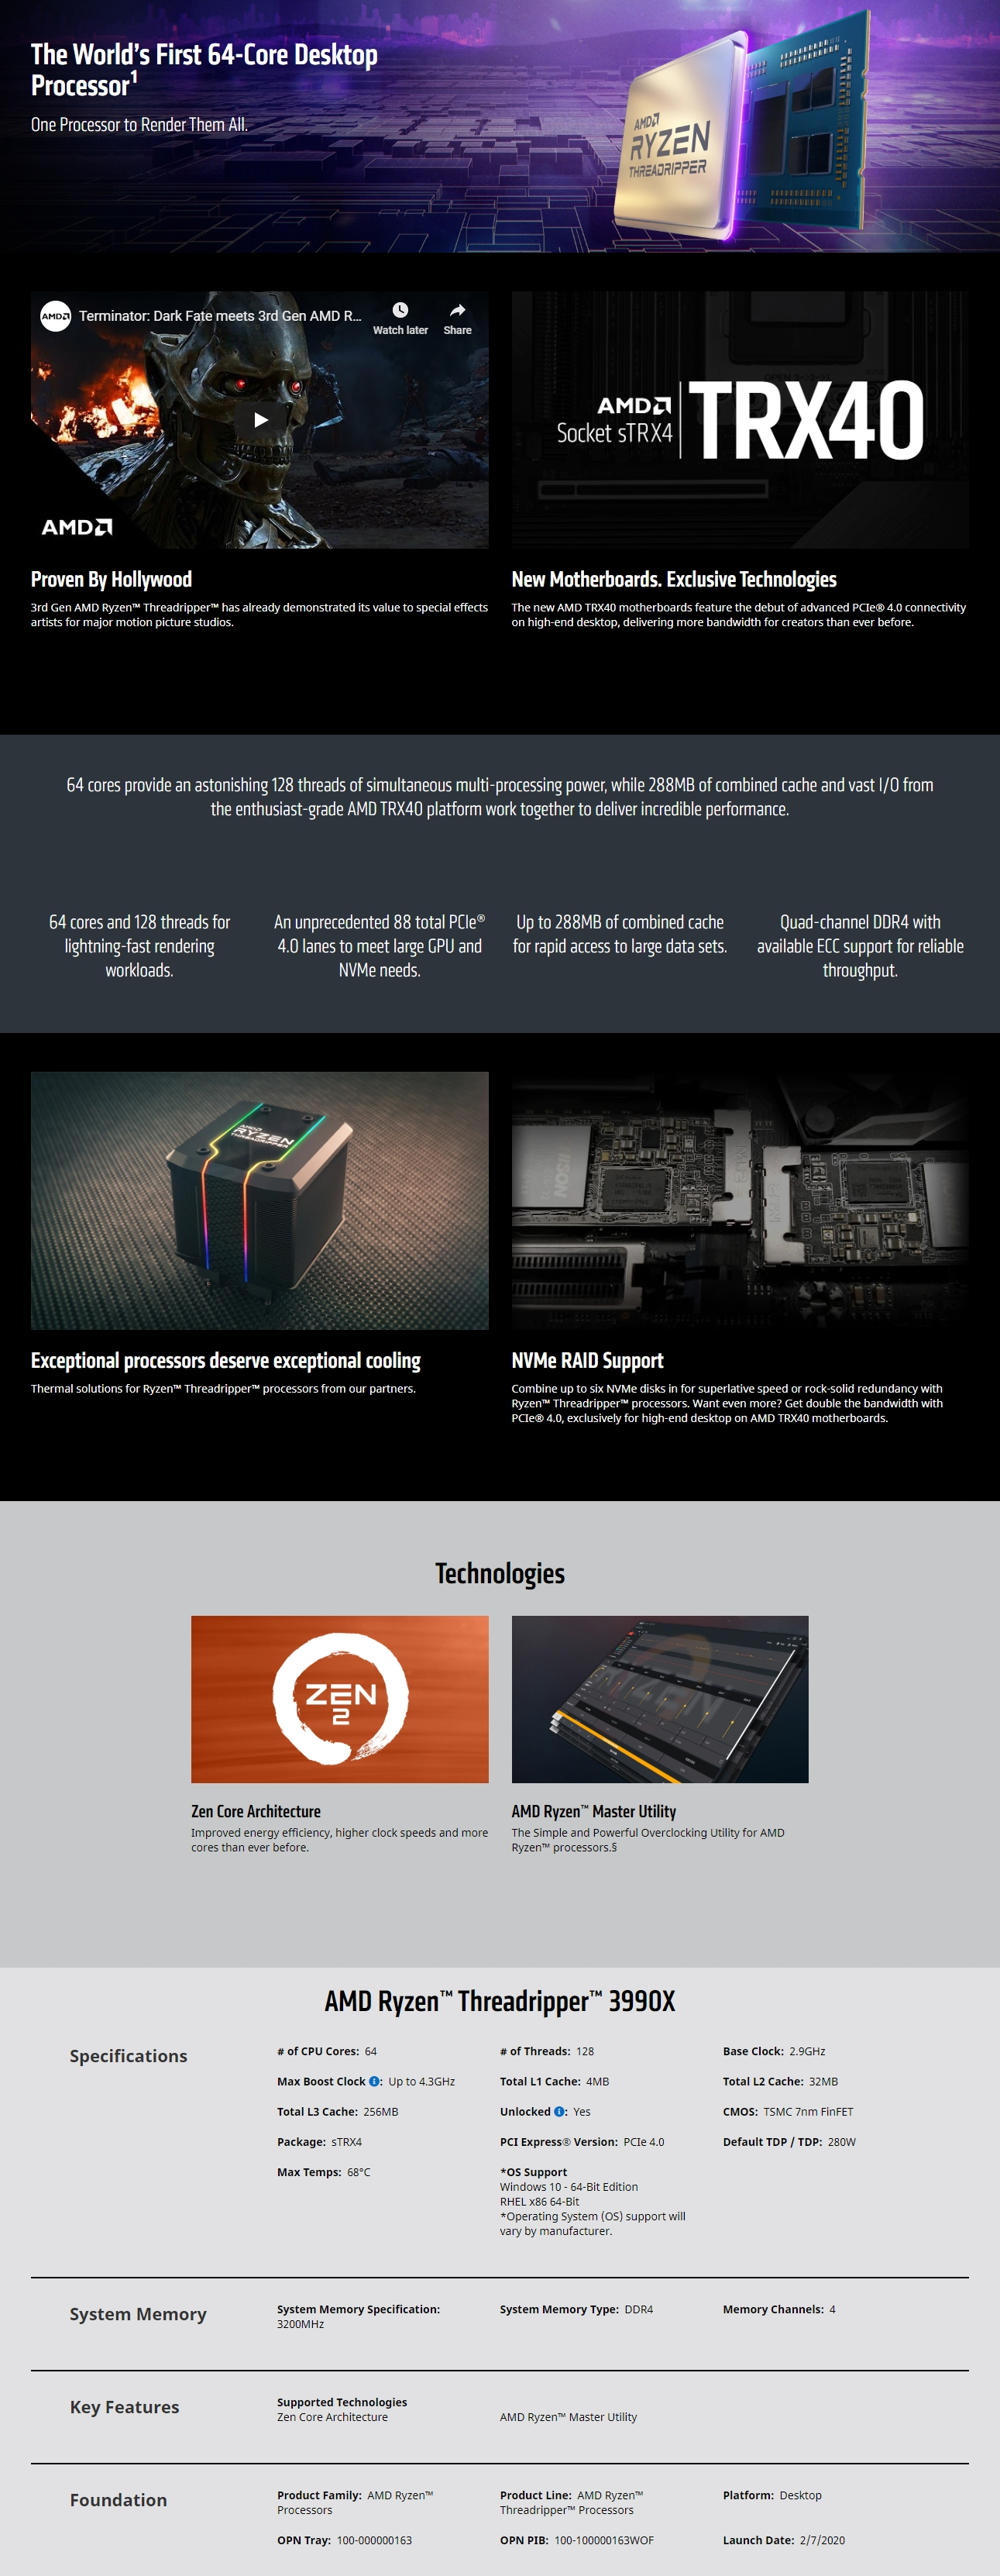 A large marketing image providing additional information about the product AMD Ryzen Threadripper 3990X 64 Core 128 Thread Up To 4.3Ghz sTRX4 - No HSF Retail Box - Additional alt info not provided